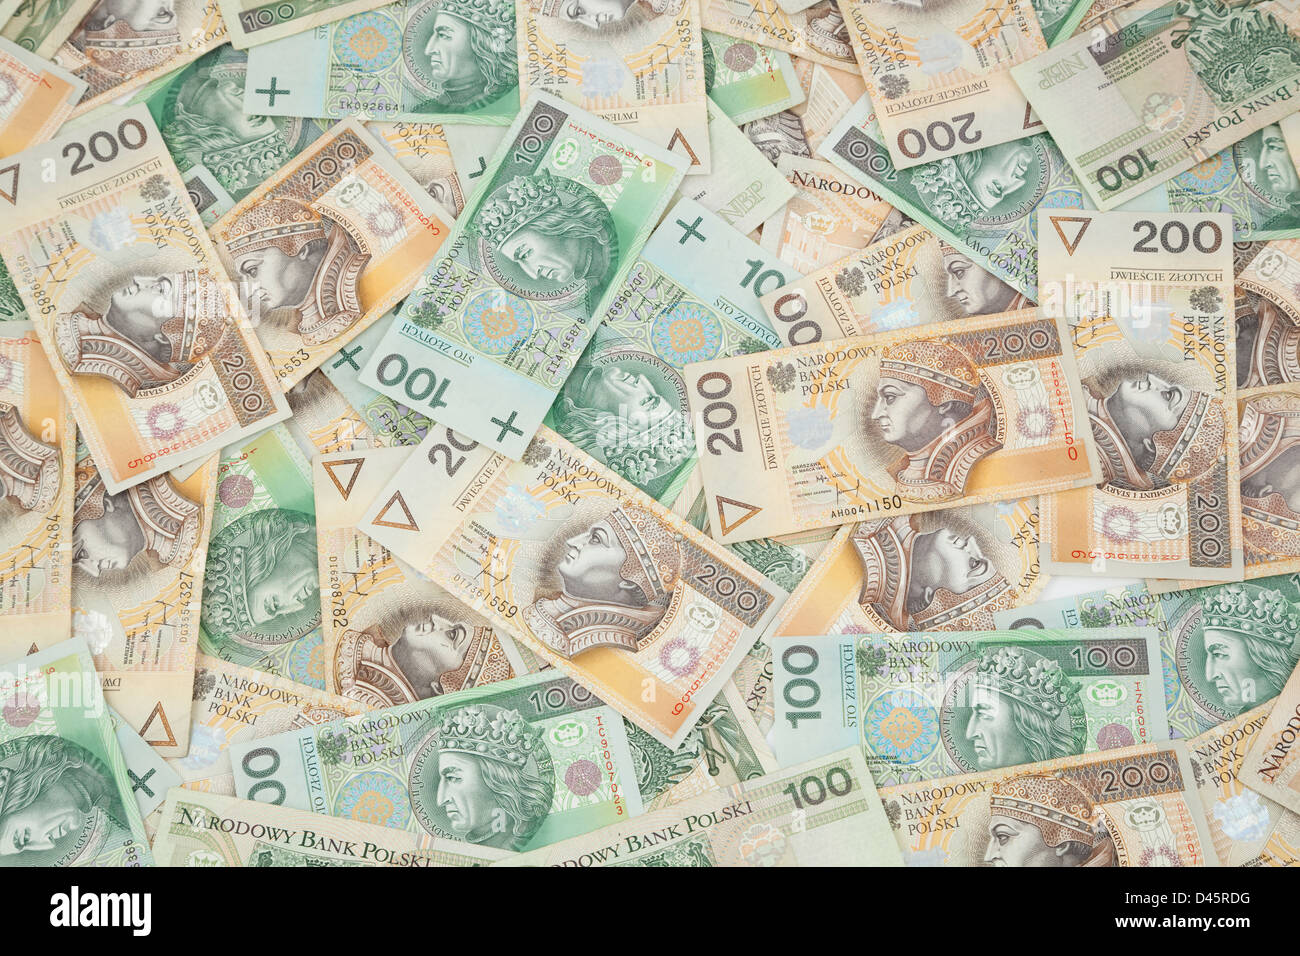 dissolved Poland currency (hundred and two hundred) as background - Stock Image